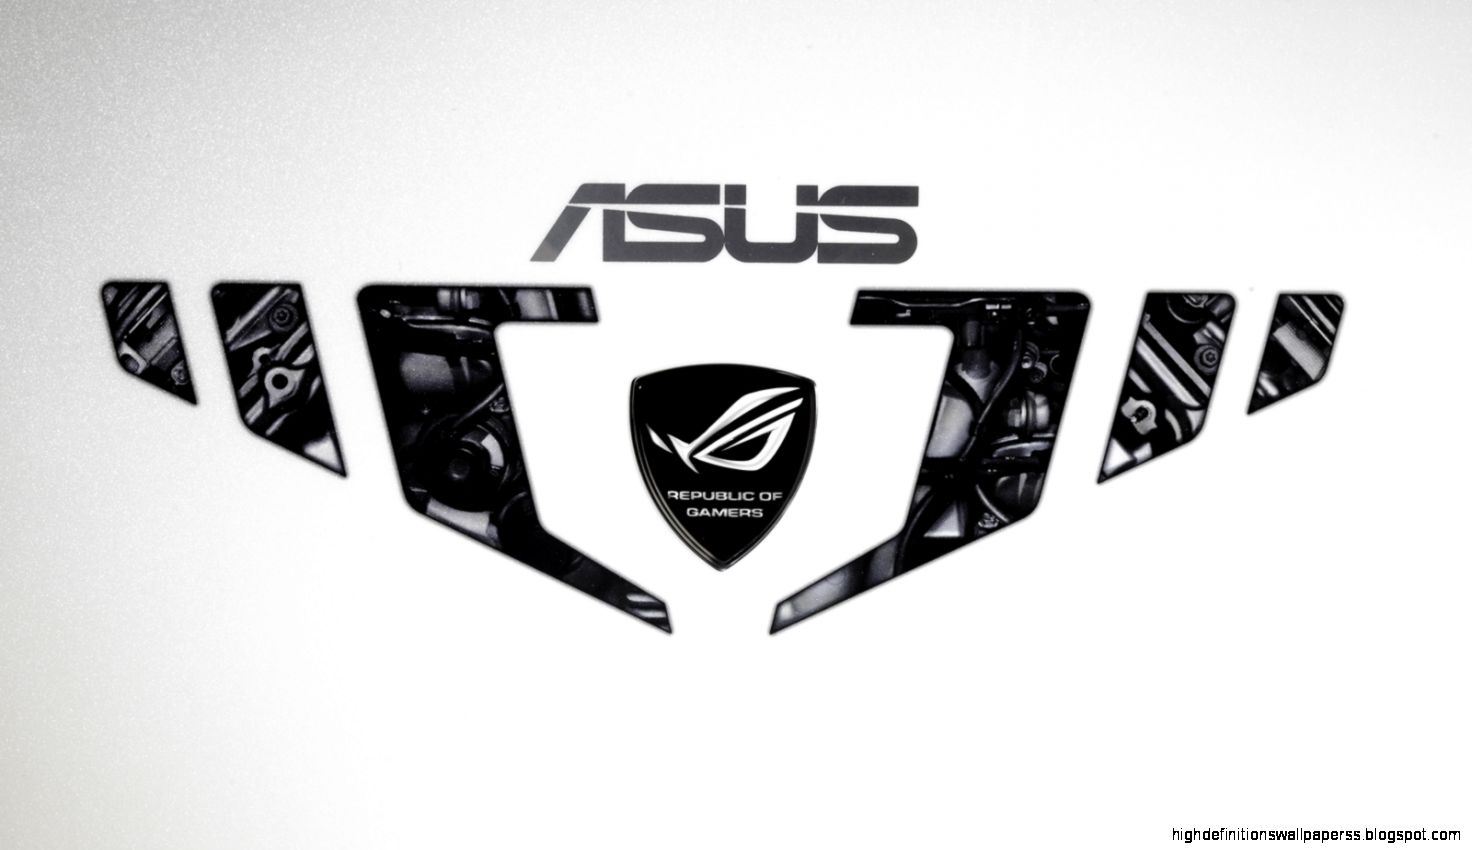 Asus 3D Logo Hd Wallpaper | High Definitions Wallpapers